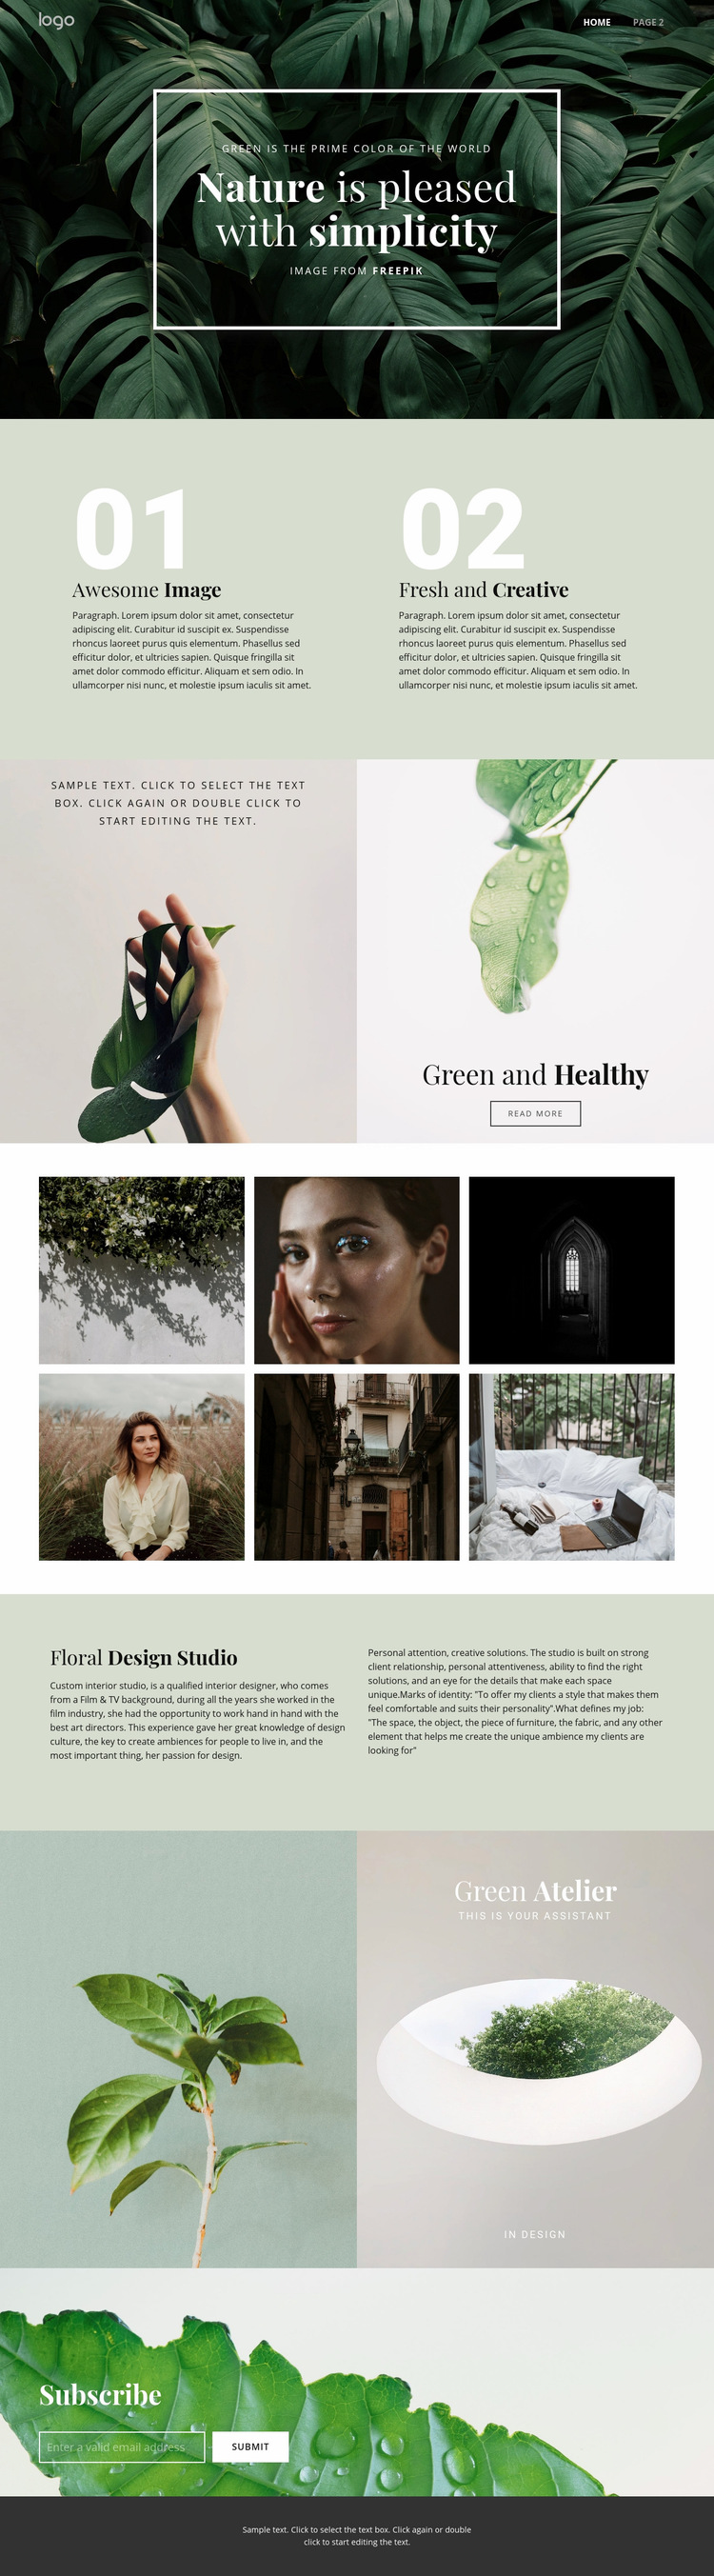 Beauty simplicity of nature Web Page Design